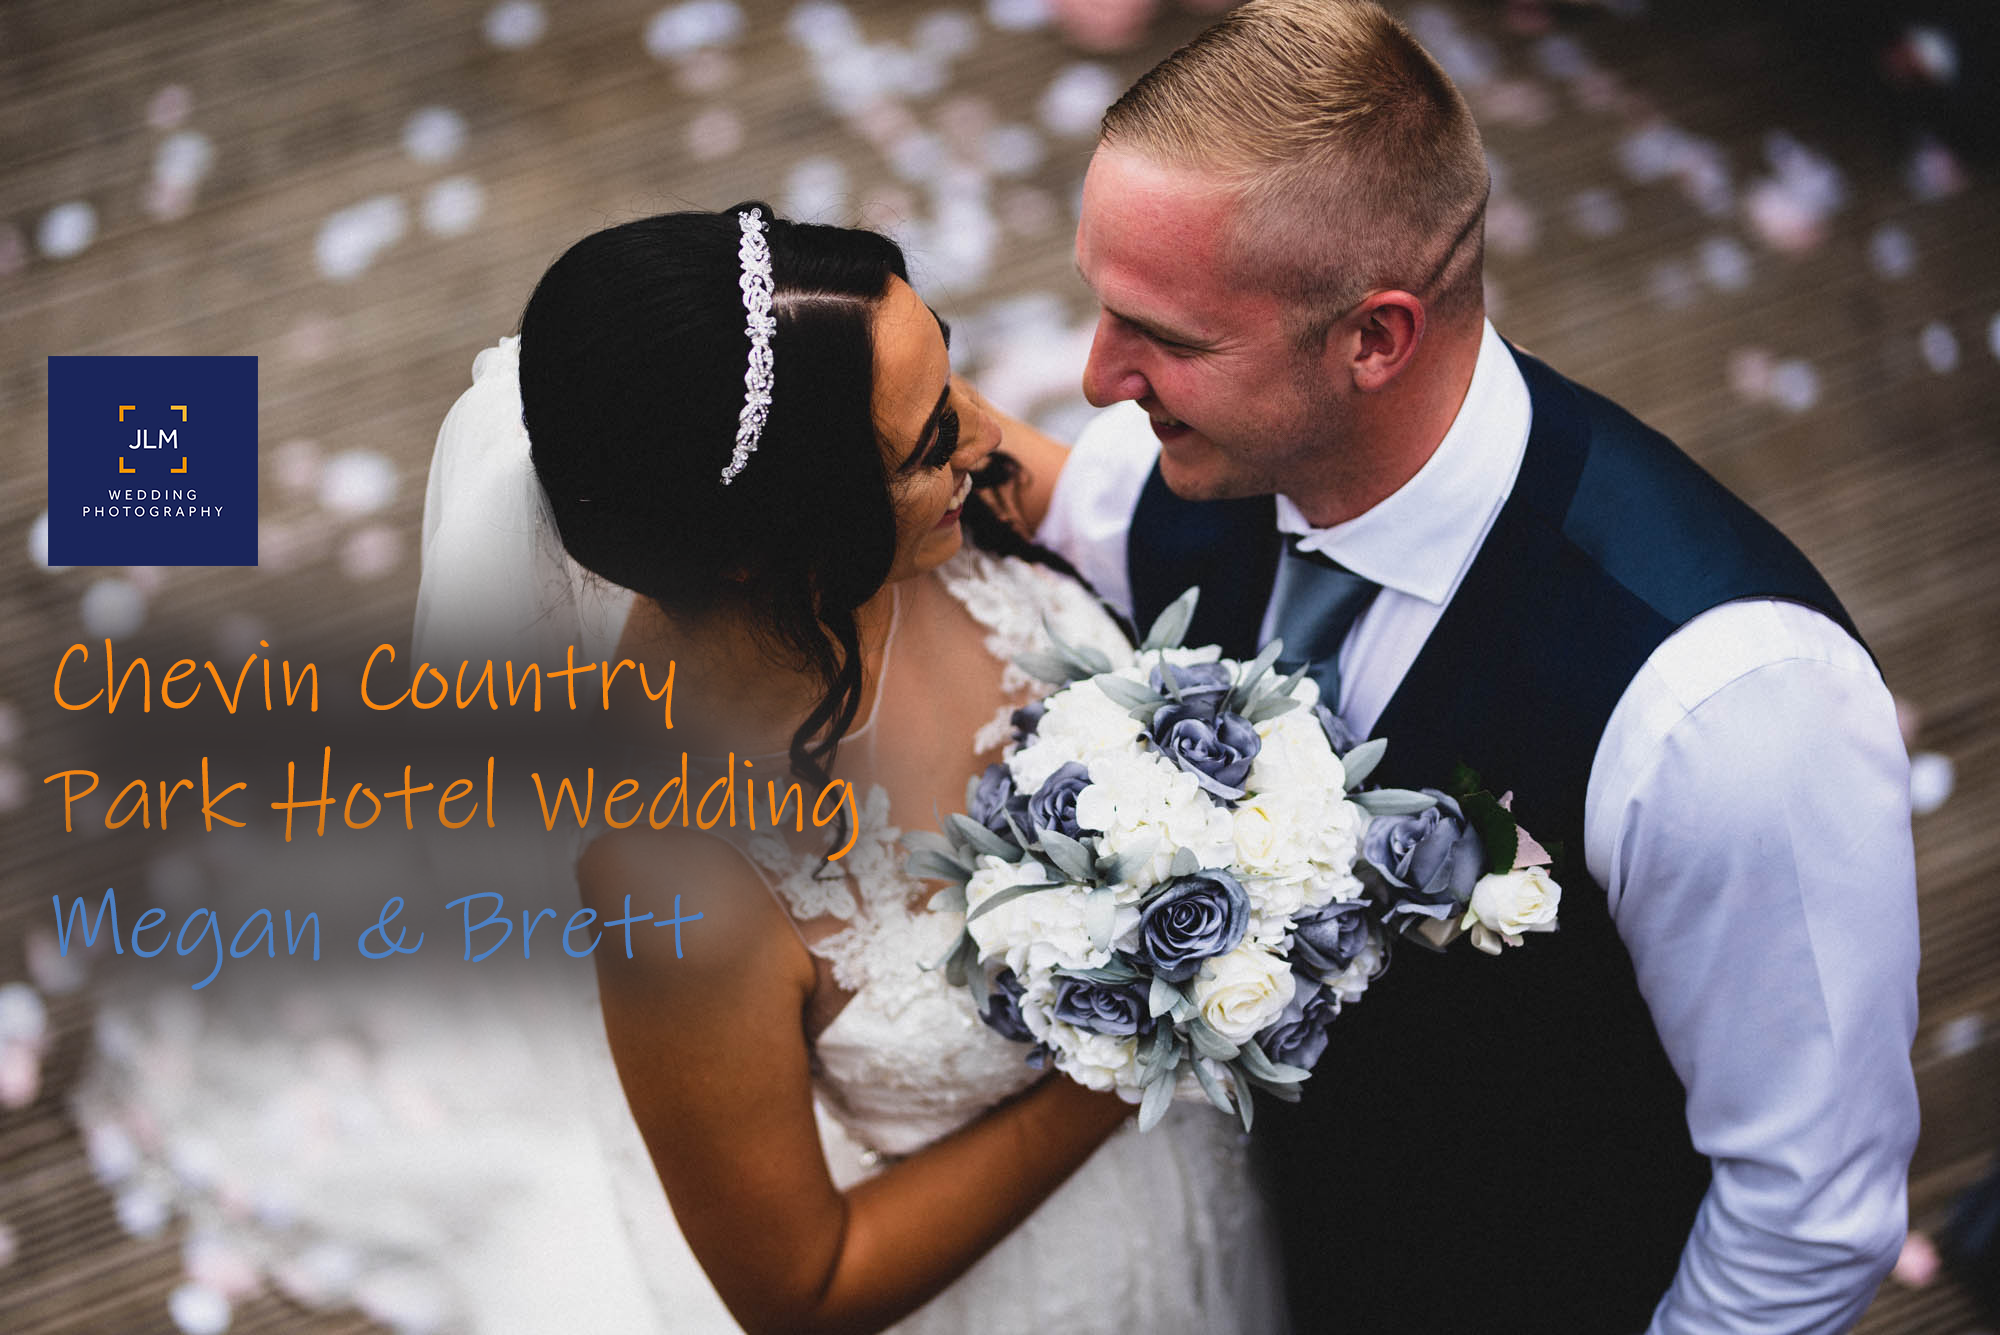 Chevin Country Park Hotel Wedding :: Megan & Brett